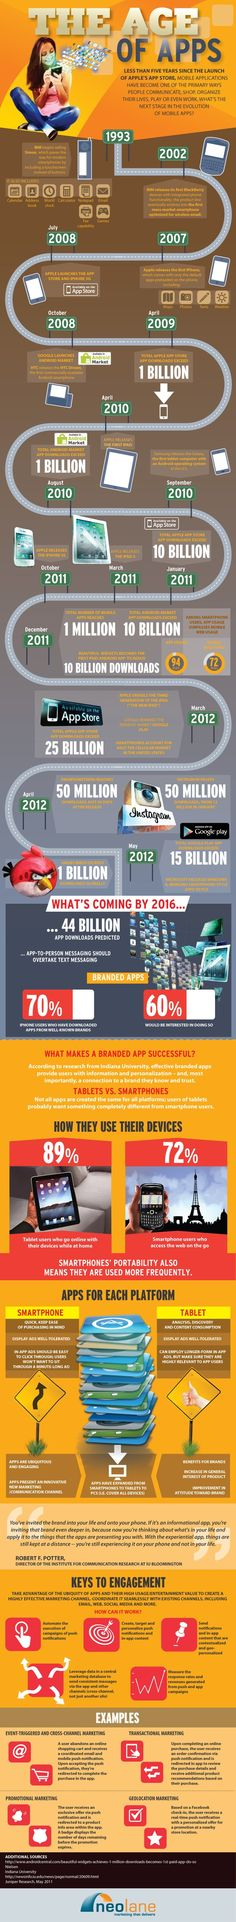 The World of Apps [Infographic]